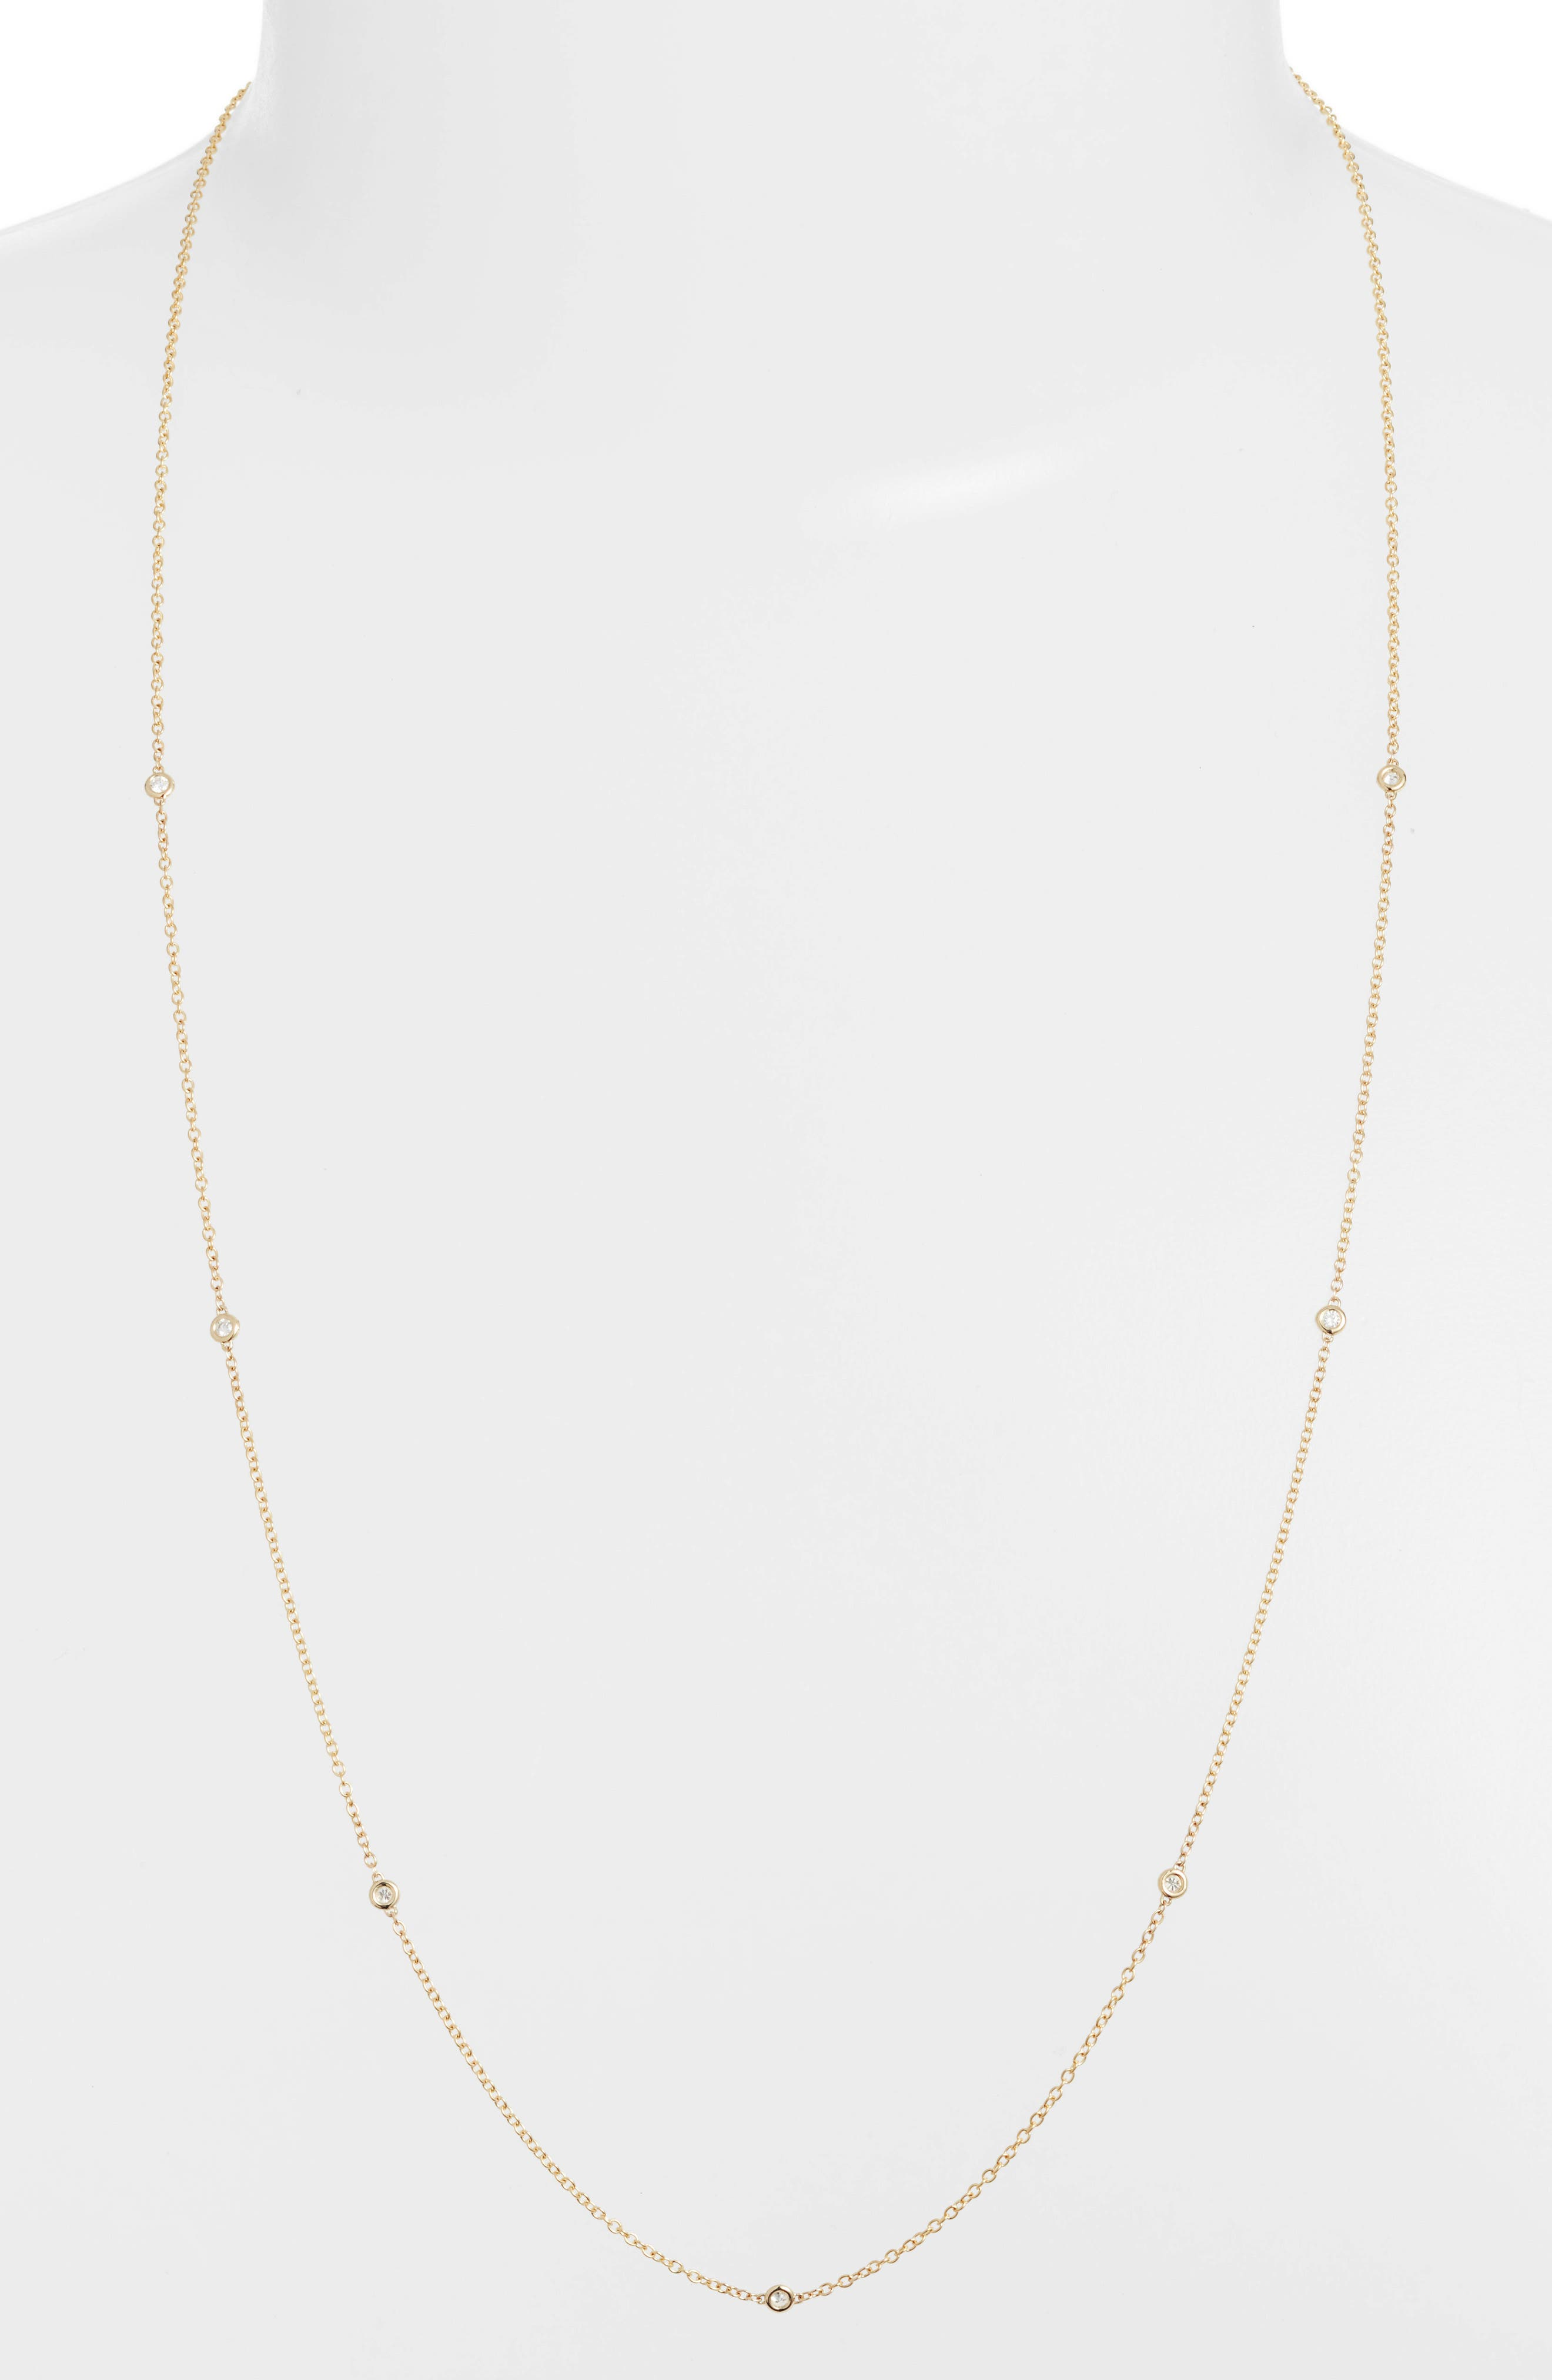 Zoe Chicco Floating Diamond Long Station Necklace